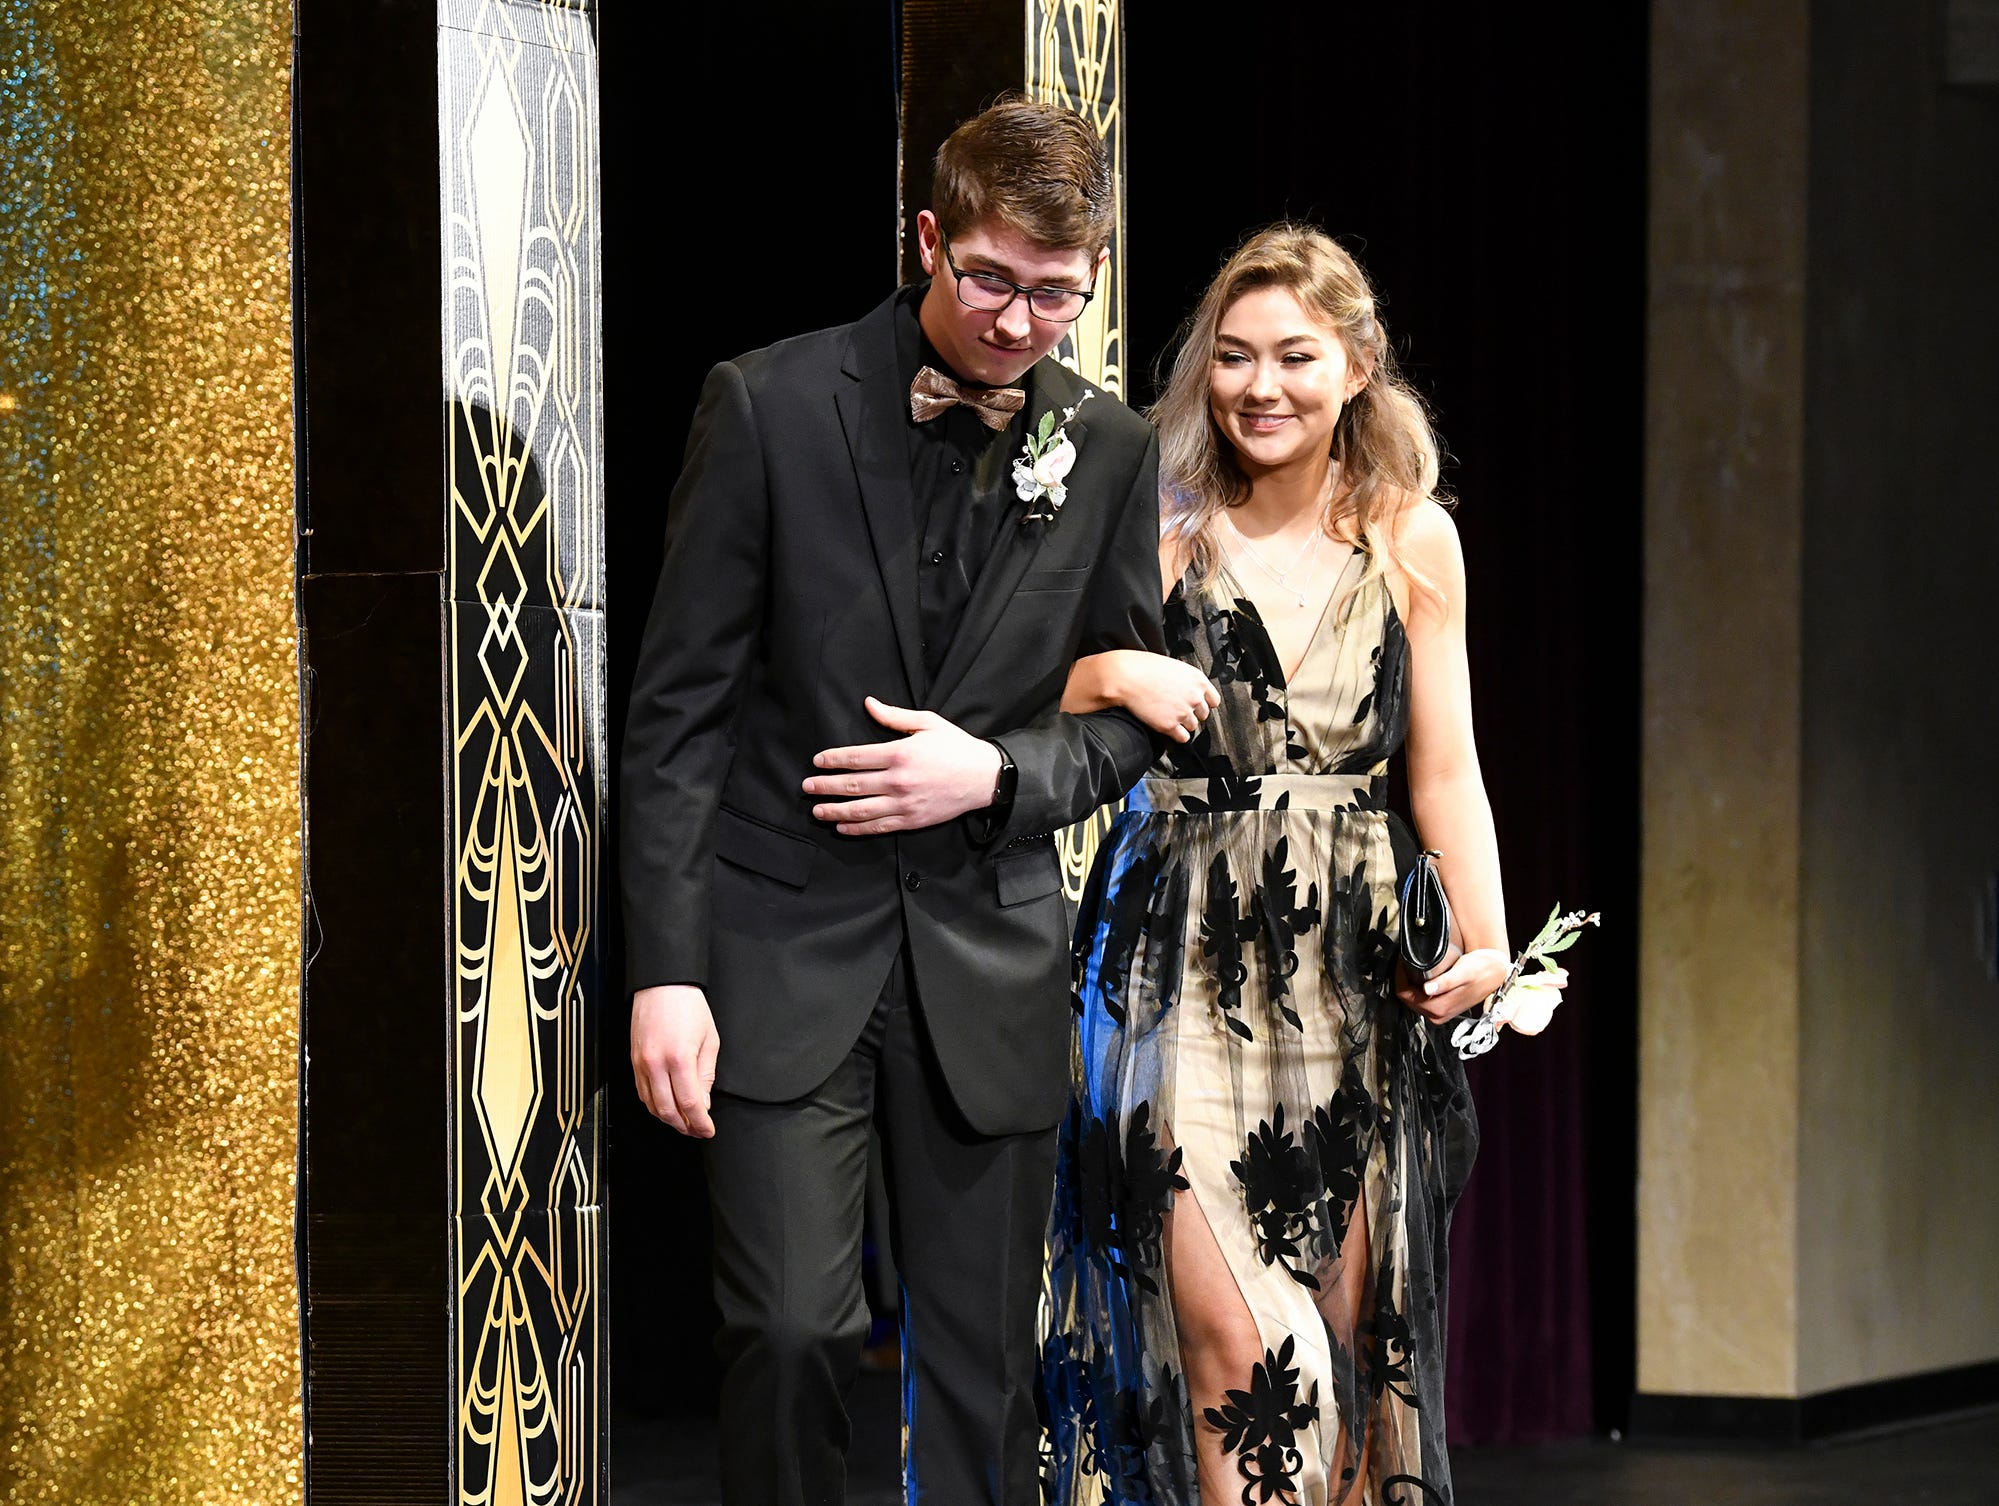 Ashley Kashevaroff and Andrew Norris take their turn during prom grand march Saturday, April 6, at Albany High School.